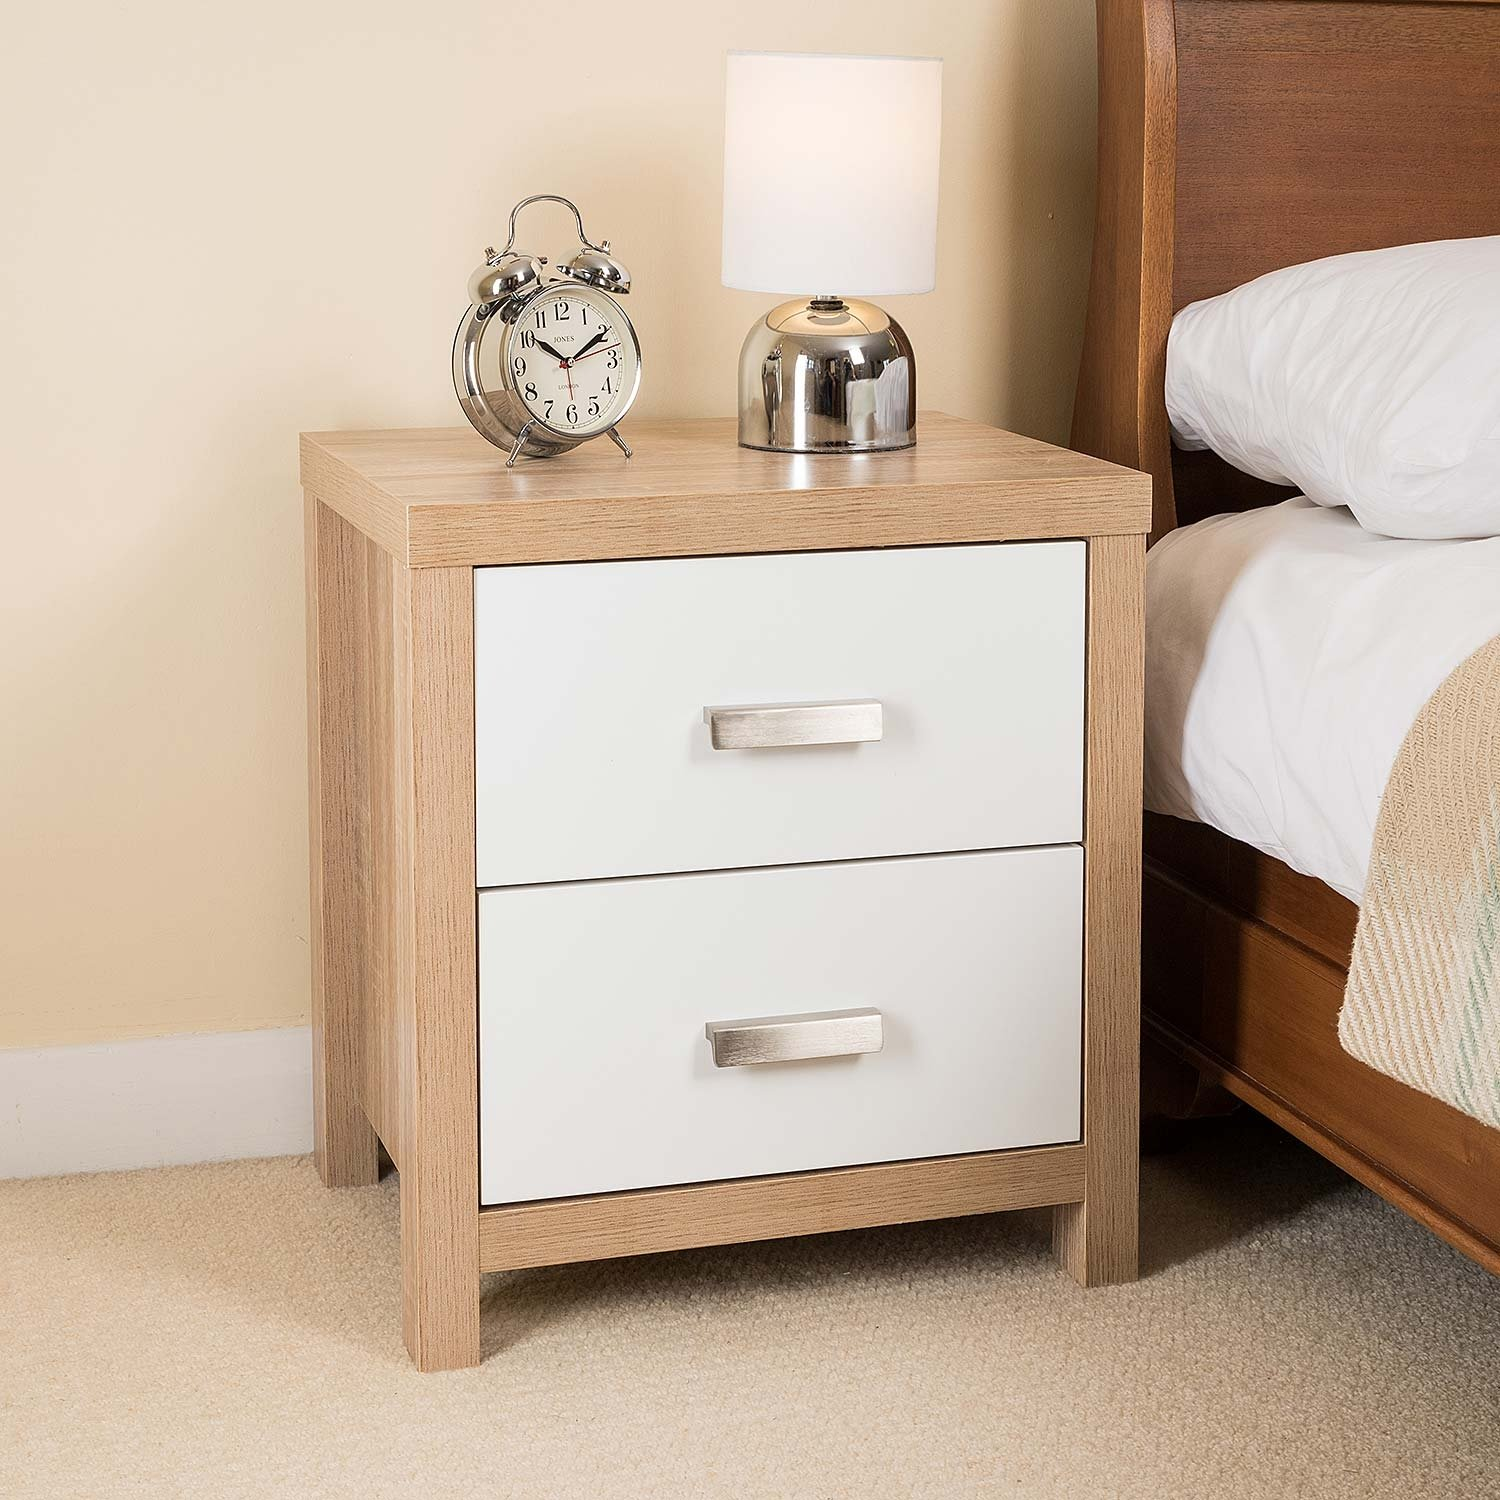 Christow 2 Drawer Oak Effect White Wood Bedside Cabinet Modern Bedroom Table Furniture Buy Online In Macedonia Christow Products In Macedonia See Prices Reviews And Free Delivery Over 4 000 Den Desertcart